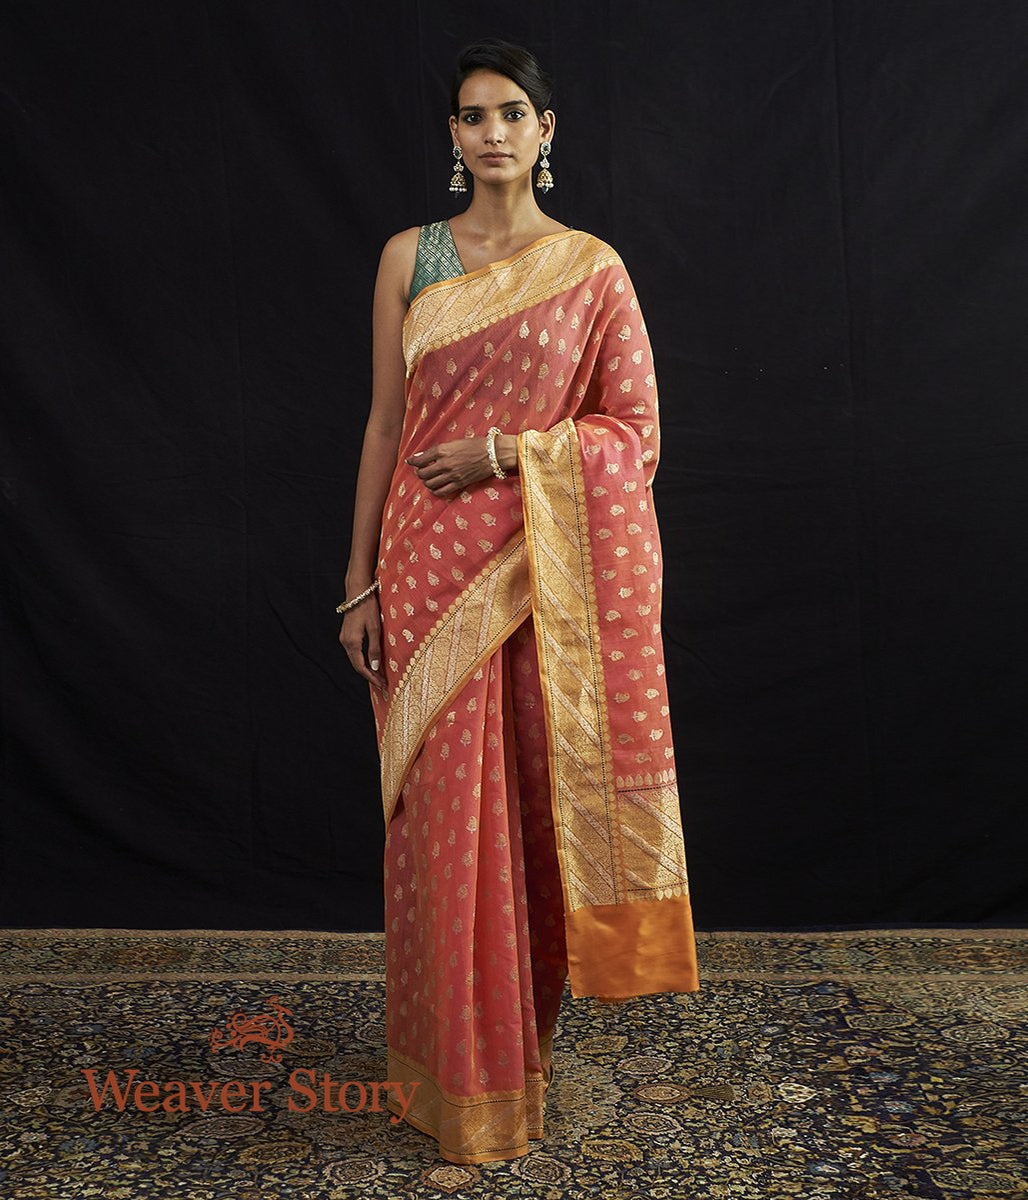 Handwoven Banarasi Jangla in Orange and Pink Dual Tone with Small Paisleys